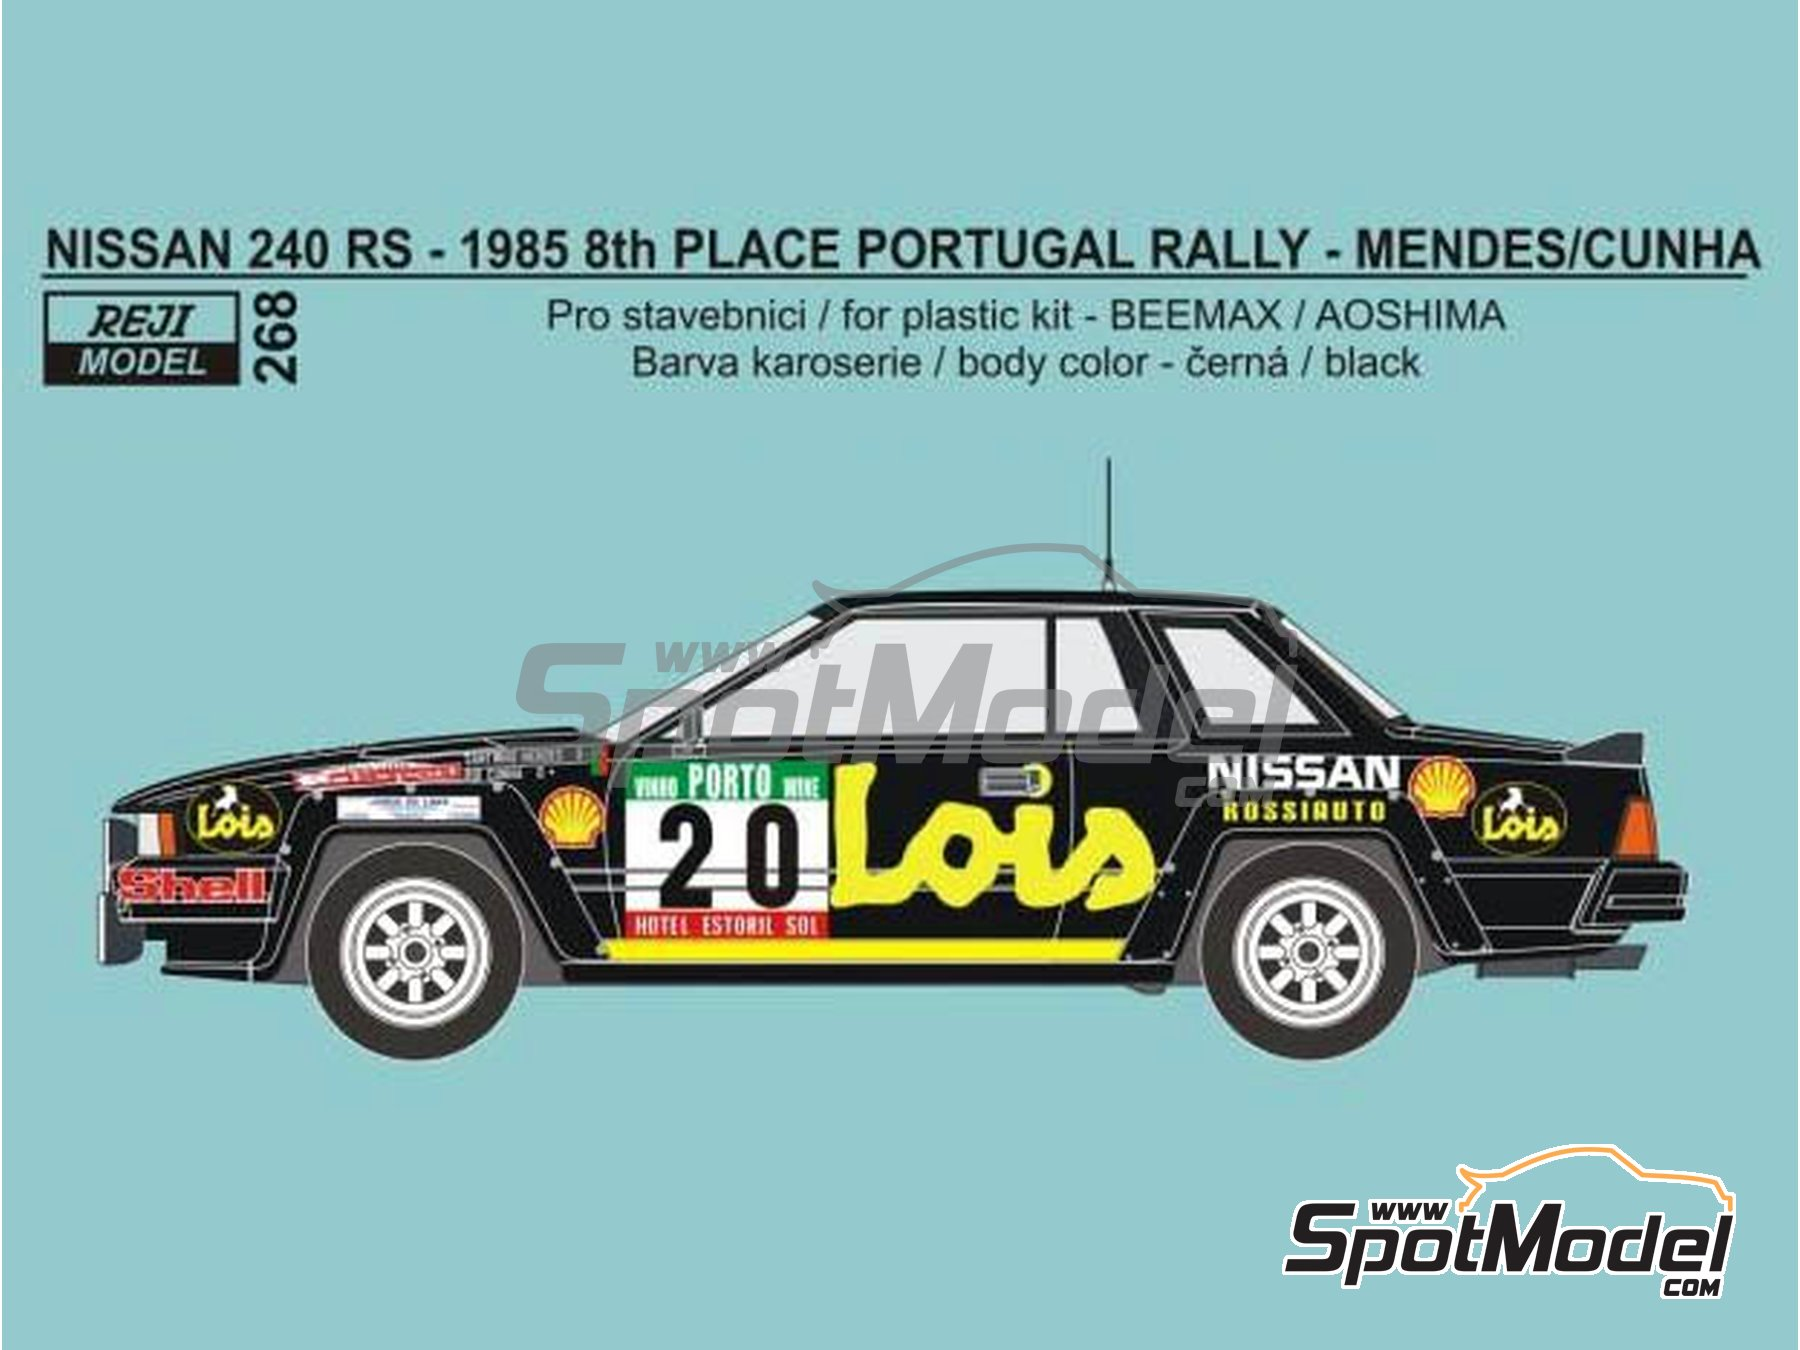 Image 1: Nissan 240RS BS110 Grupo B Lois - Rally de Portugal 1985 | Decoración en escala 1/24 fabricado por Reji Model (ref. REJI-268)